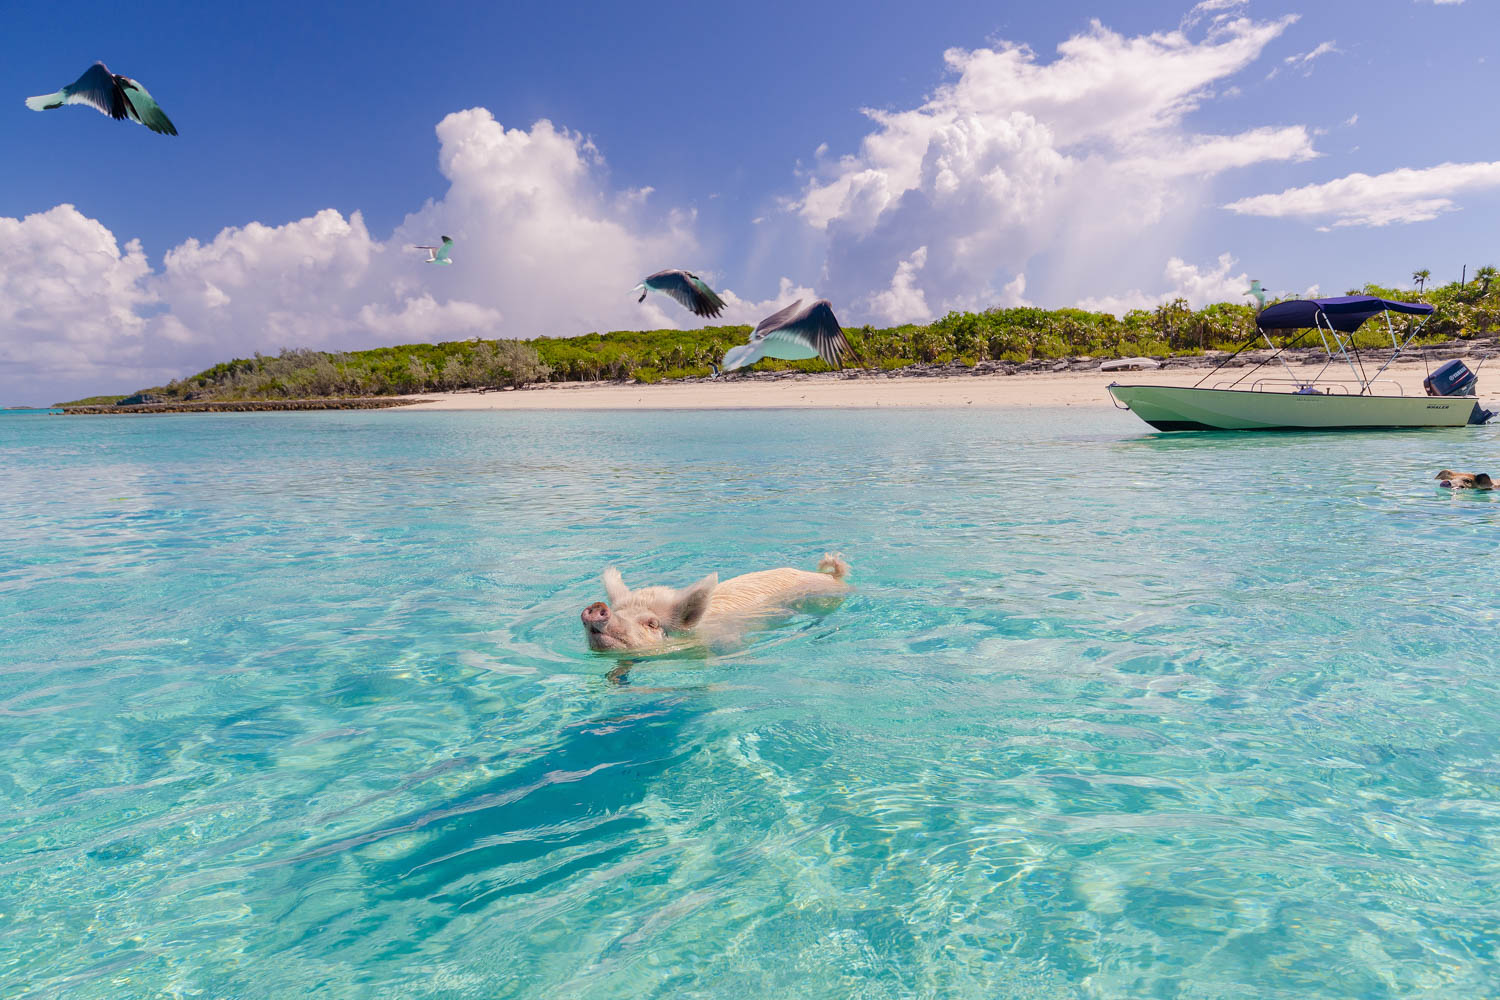 Tours from Nassau leave every morning. The Nassau to Pig Beach Bahamas tour flight takes half and hour for your Exuma Pigs tour.